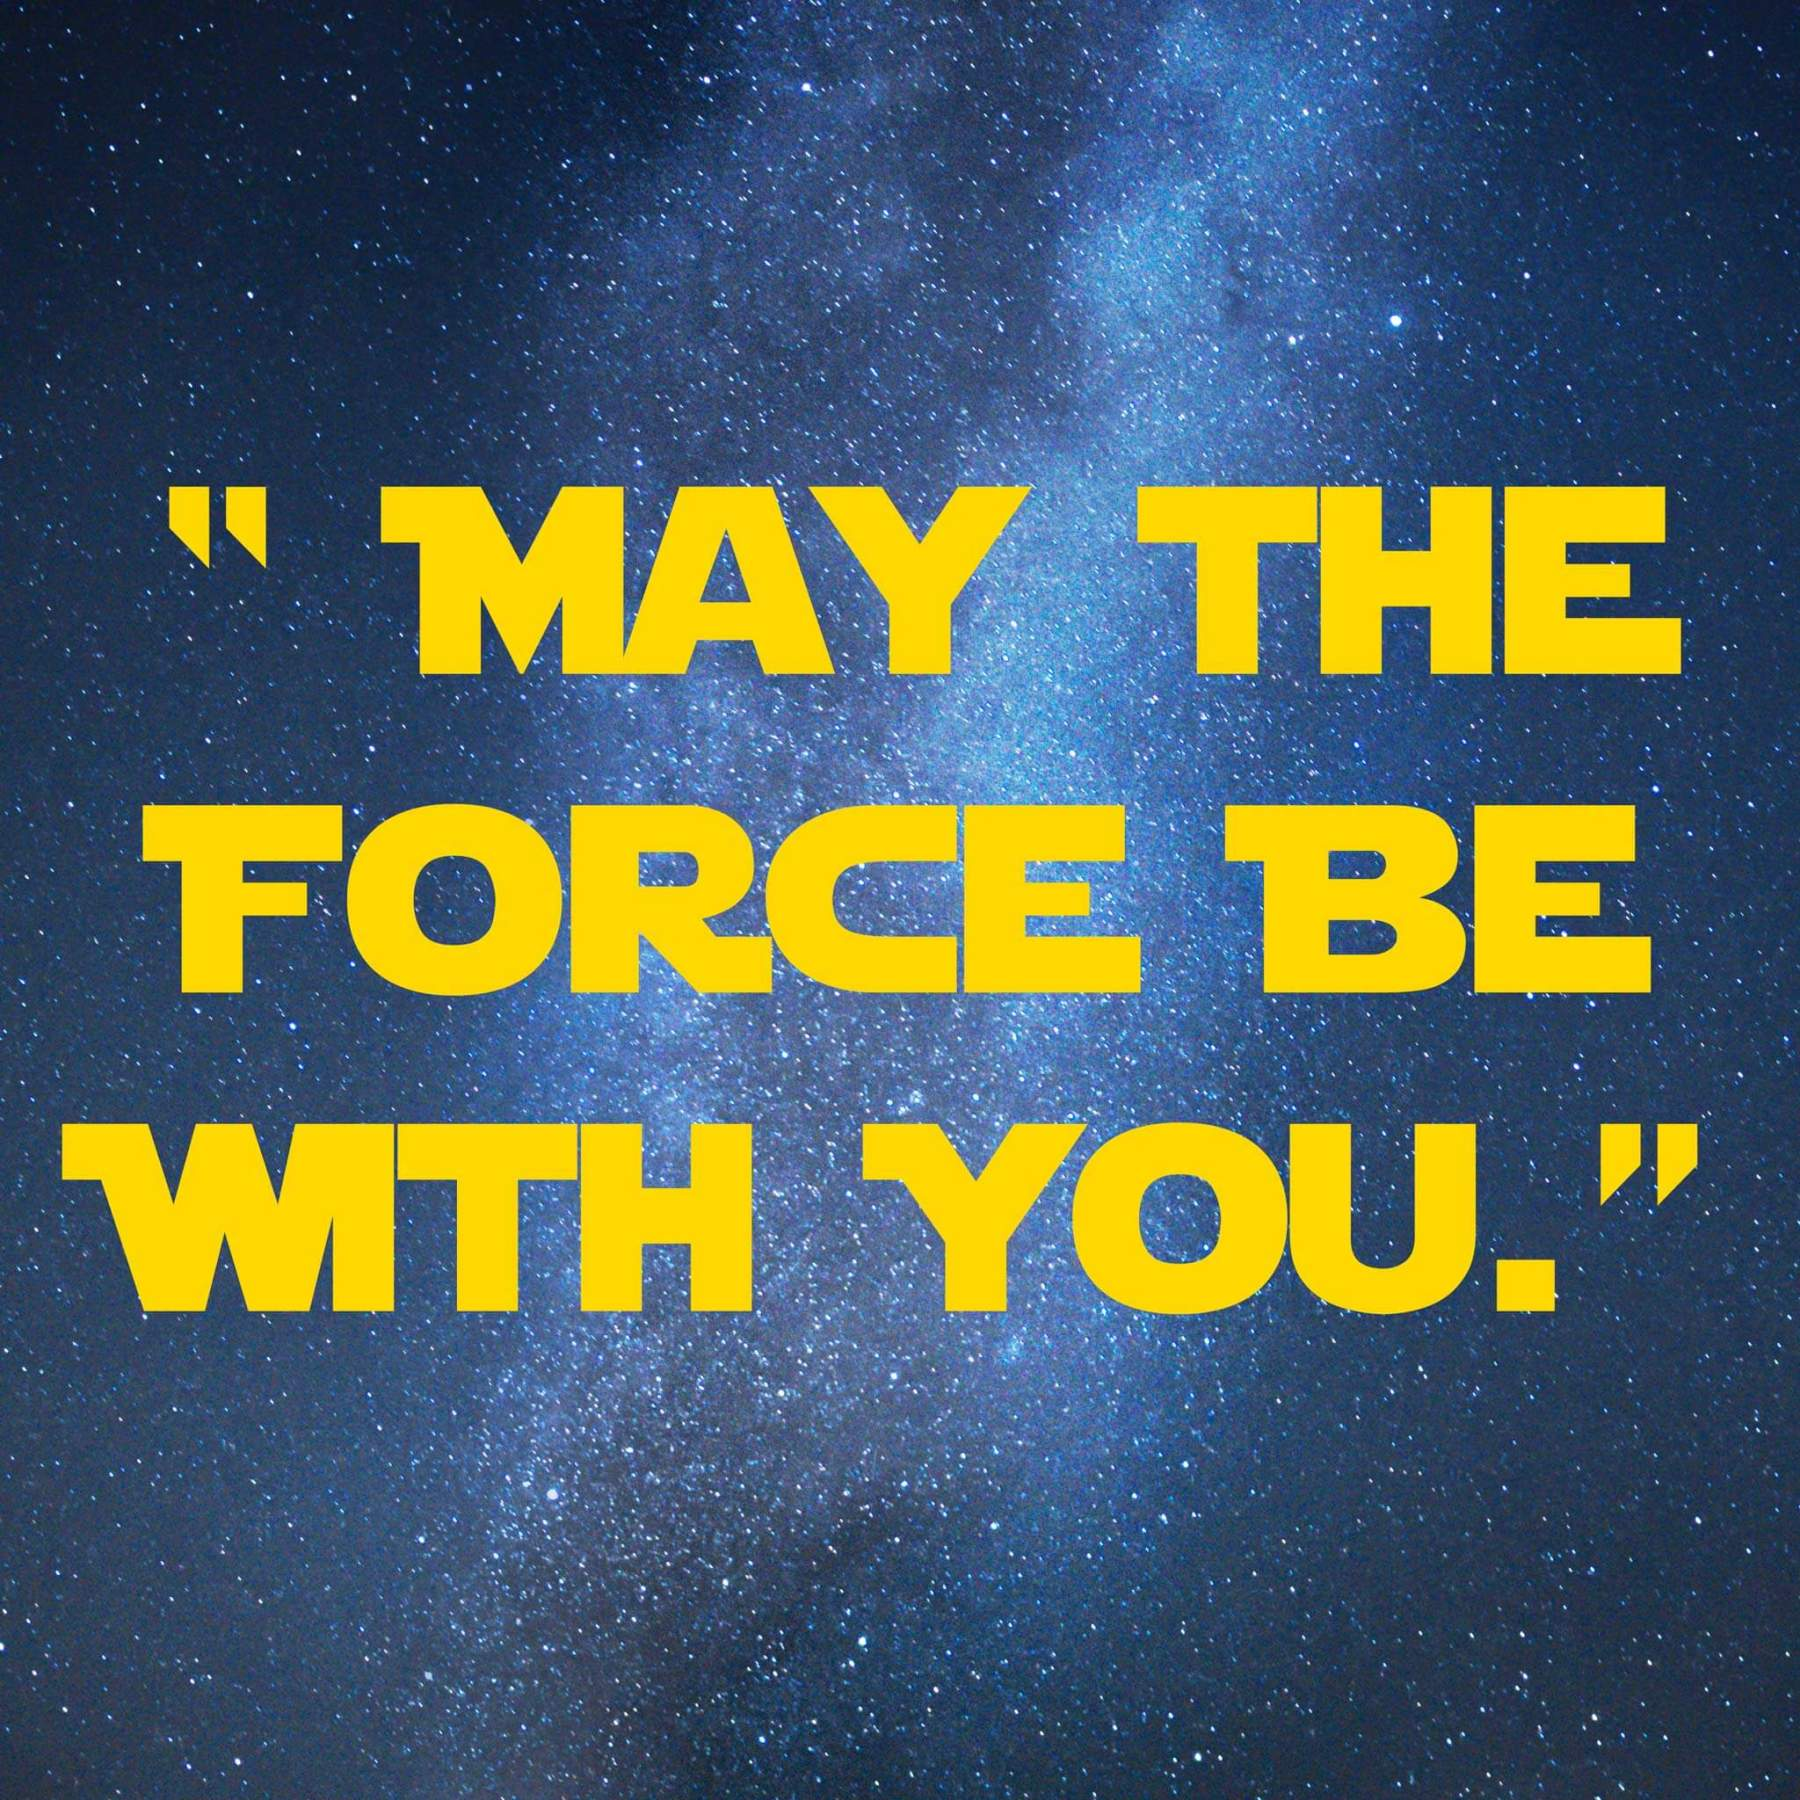 May-the-force-be-with-you | 31 Memorable Star Wars Quotes for Geeks